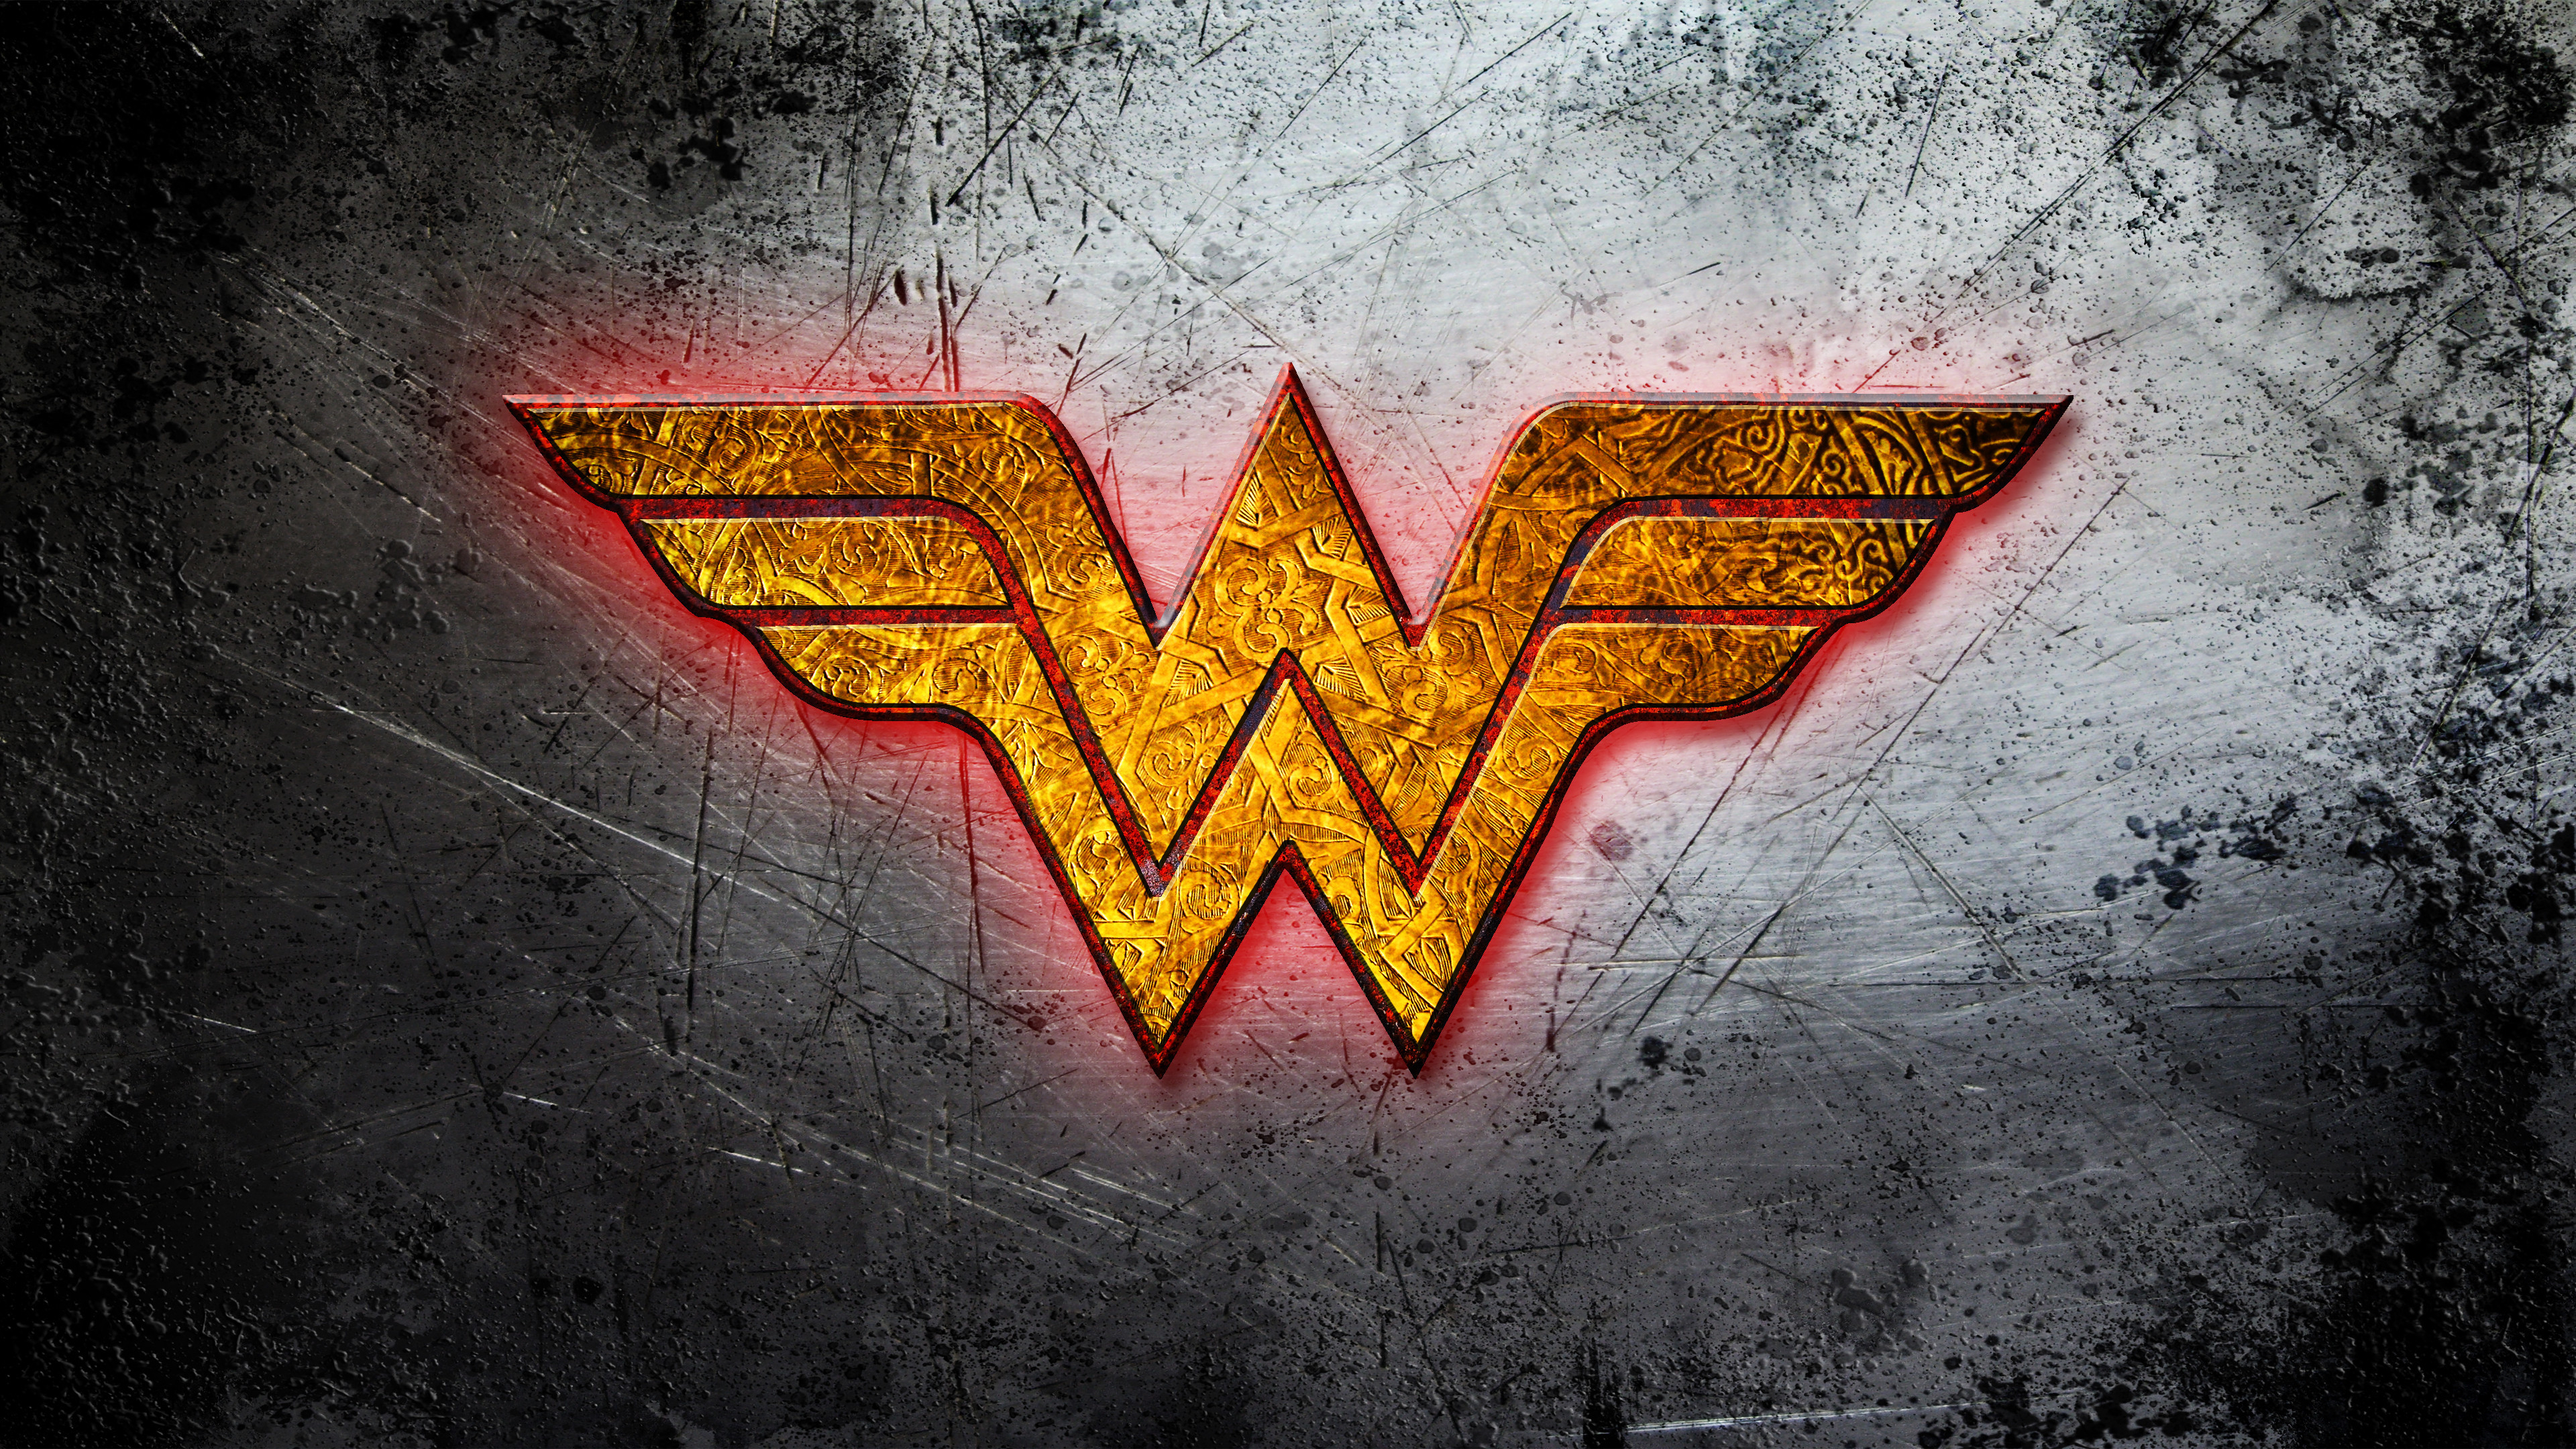 Res: 3840x2160, wonder woman wallpaper cell phone